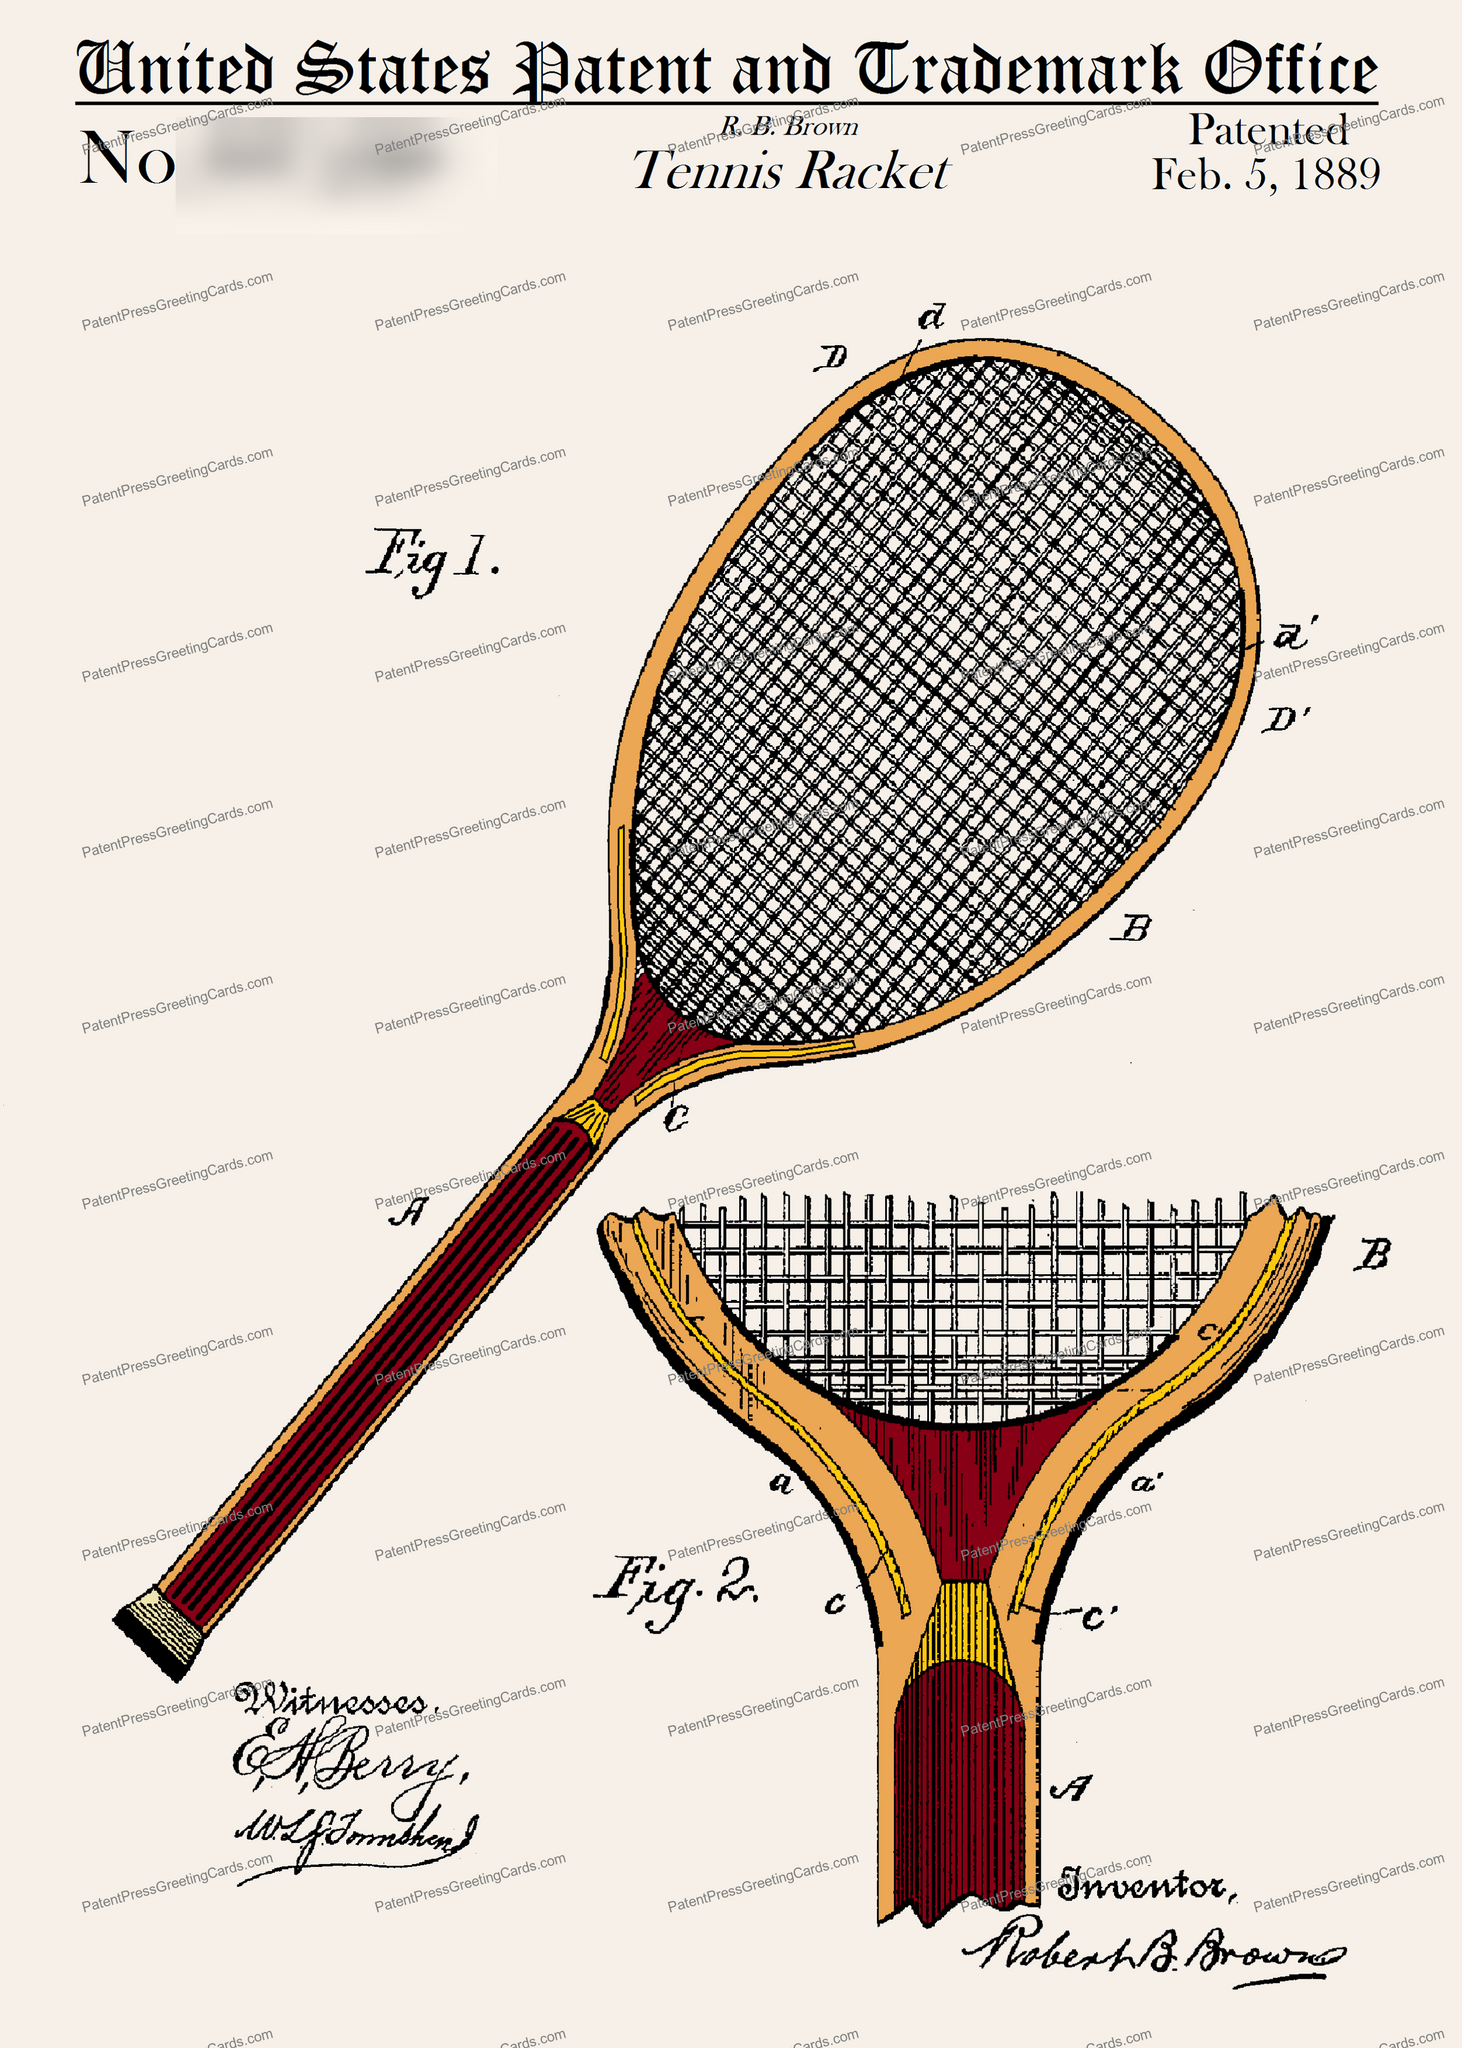 CARD-C993: Tennis Racket - Patent Press™